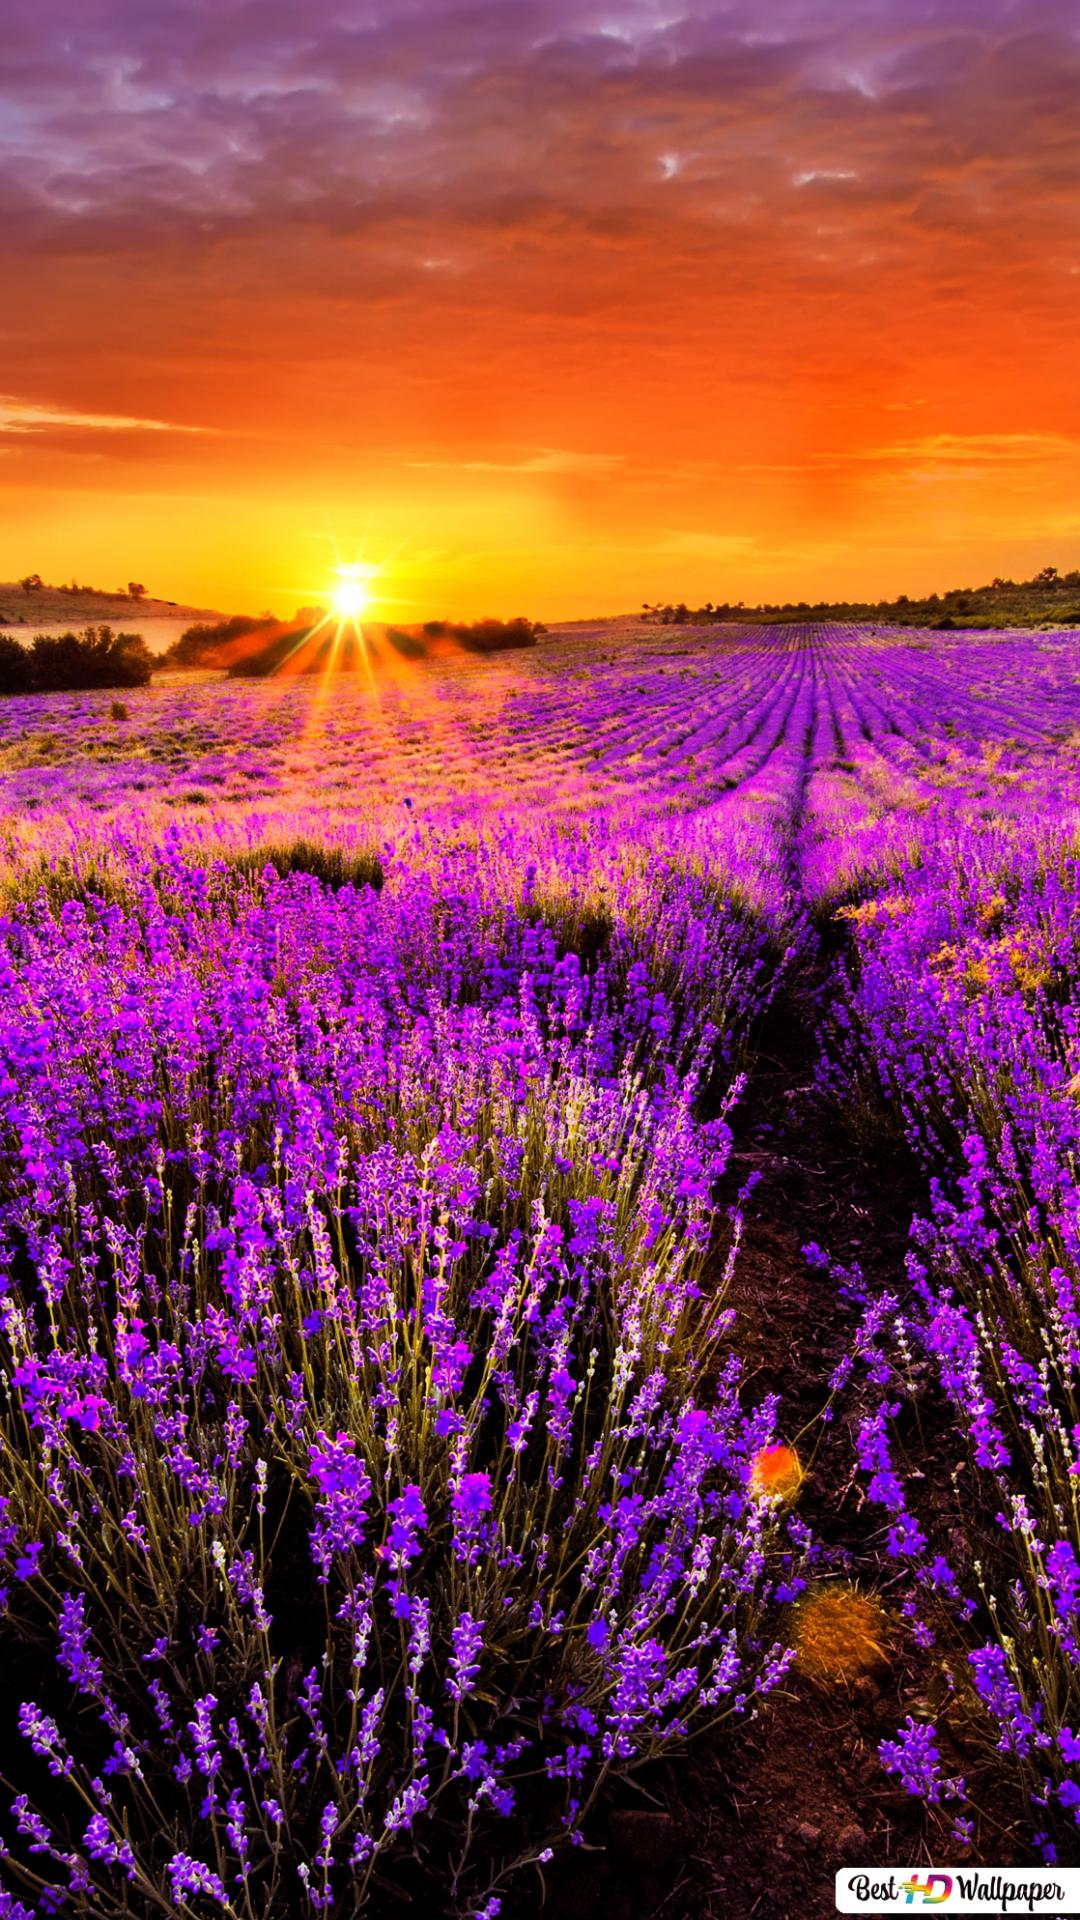 lavender field at sunset wallpaper 1080x1920 28211 165